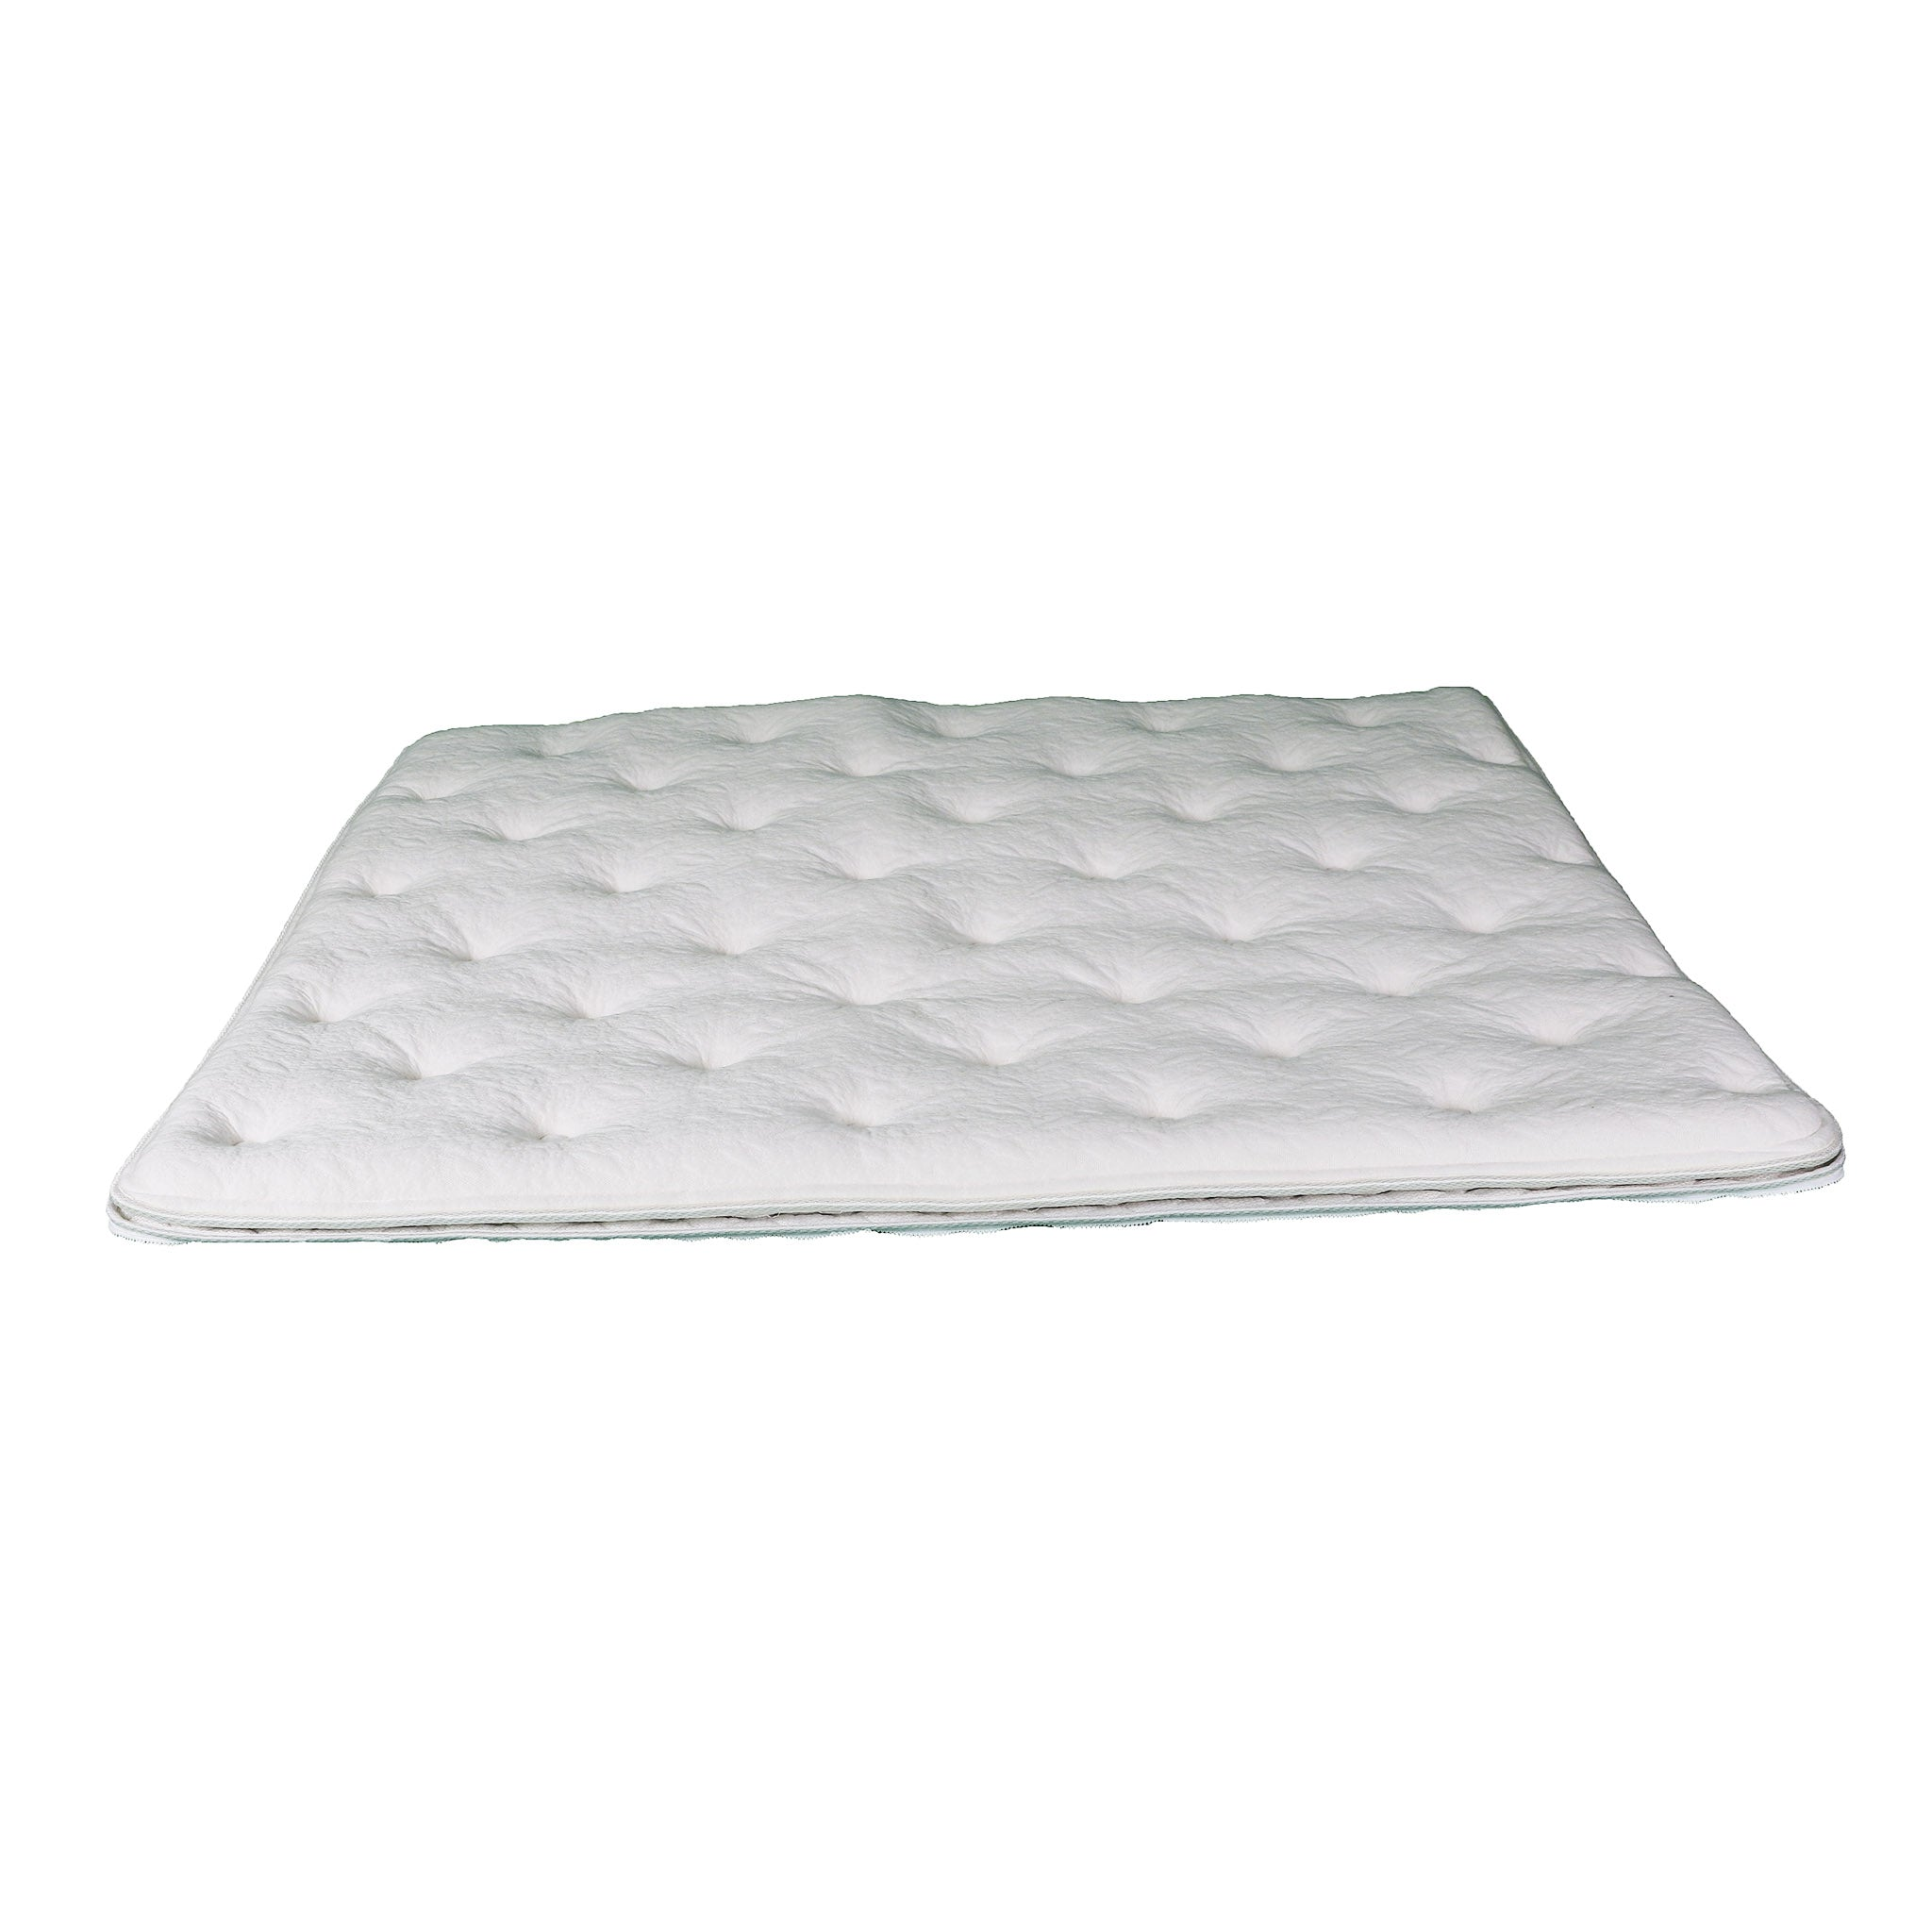 mattress systems products hardside bladder deep waterbed sleep fill sterling water waveless super